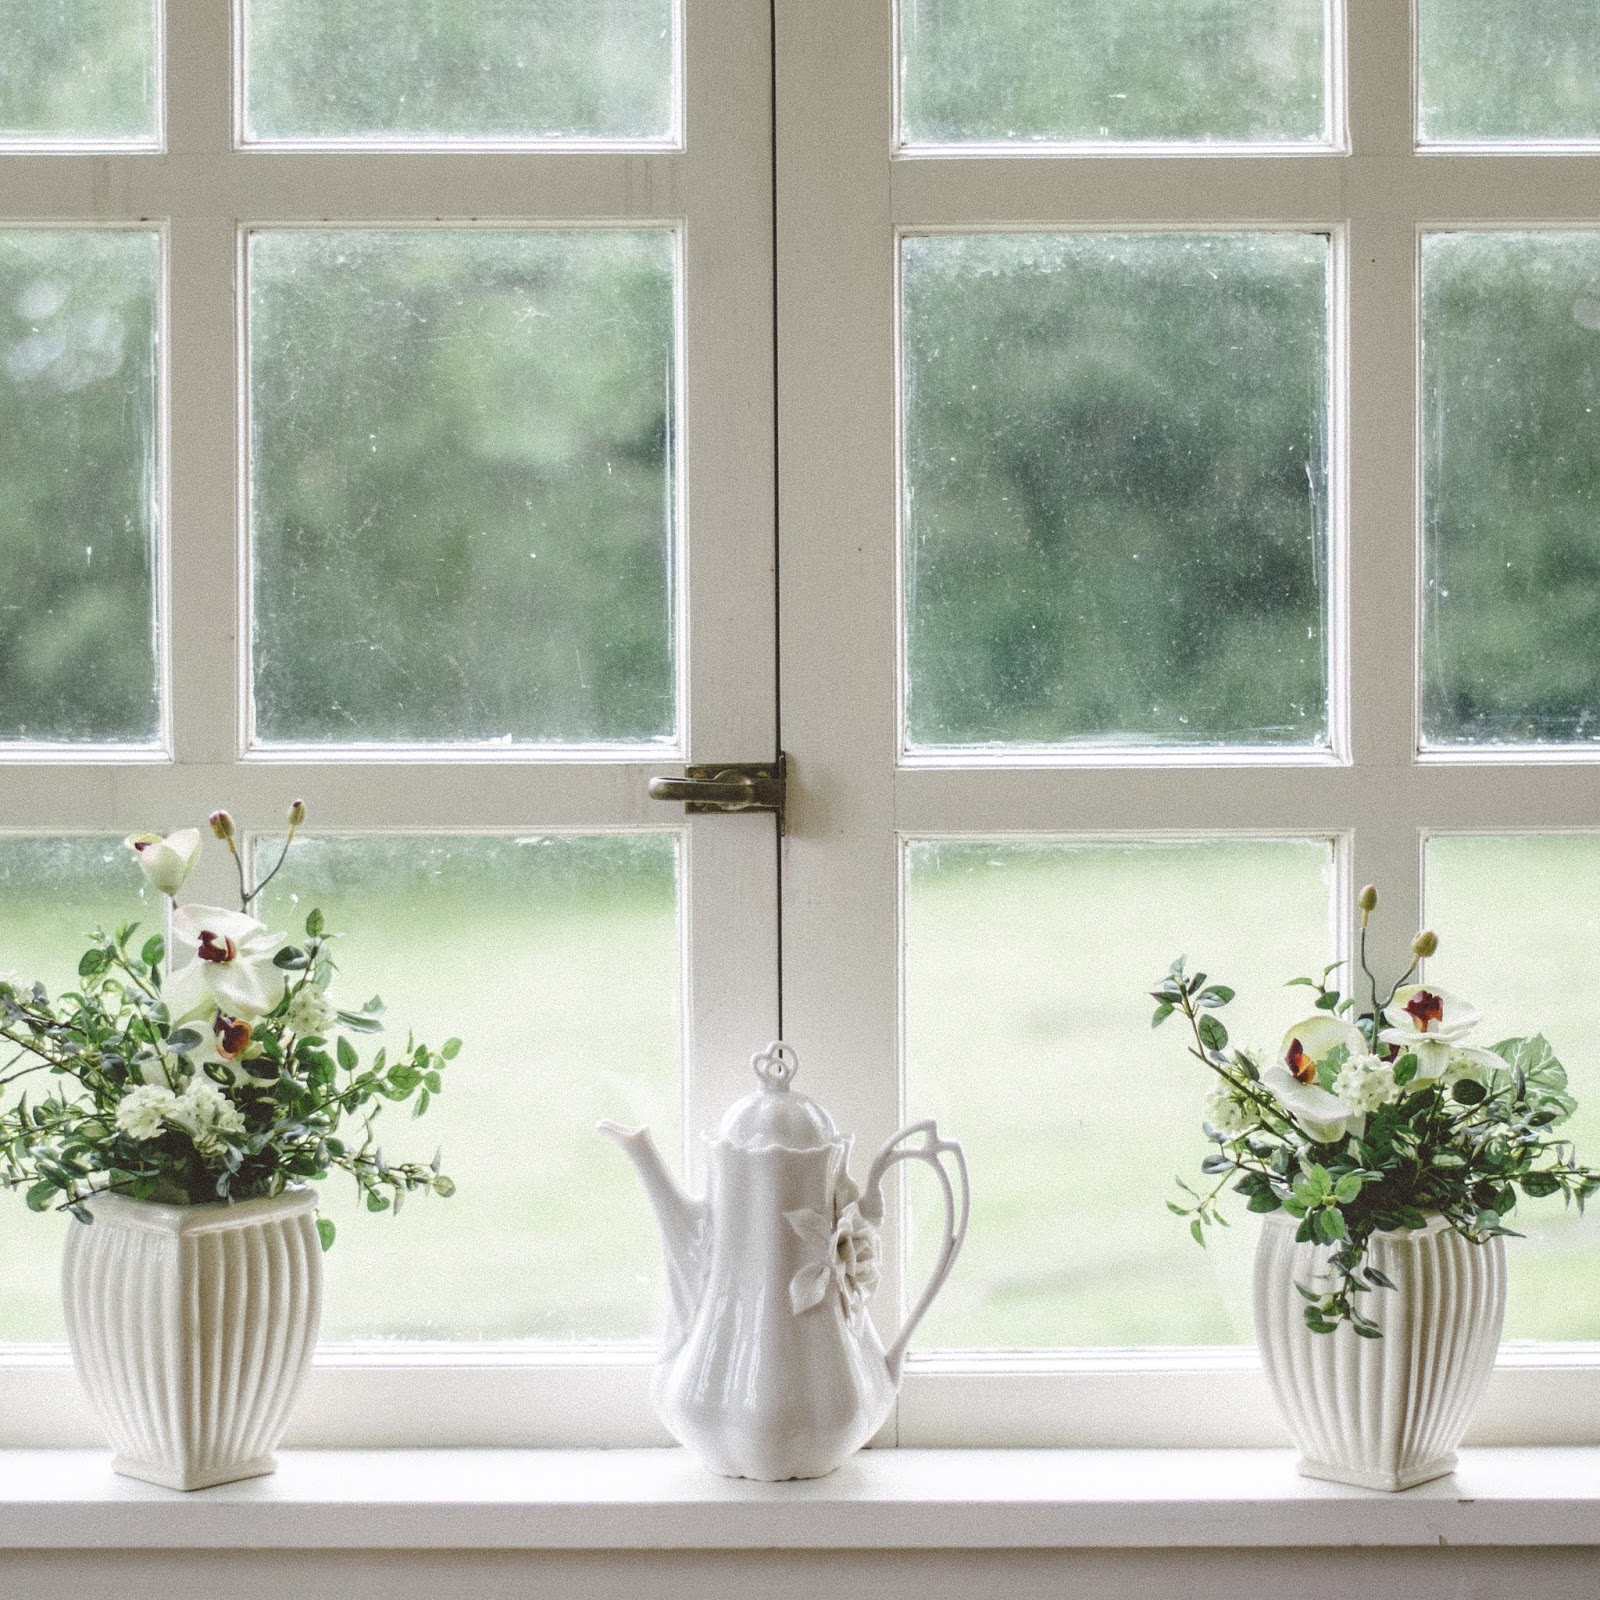 10 Ways to Use Old Windows in Your Décor